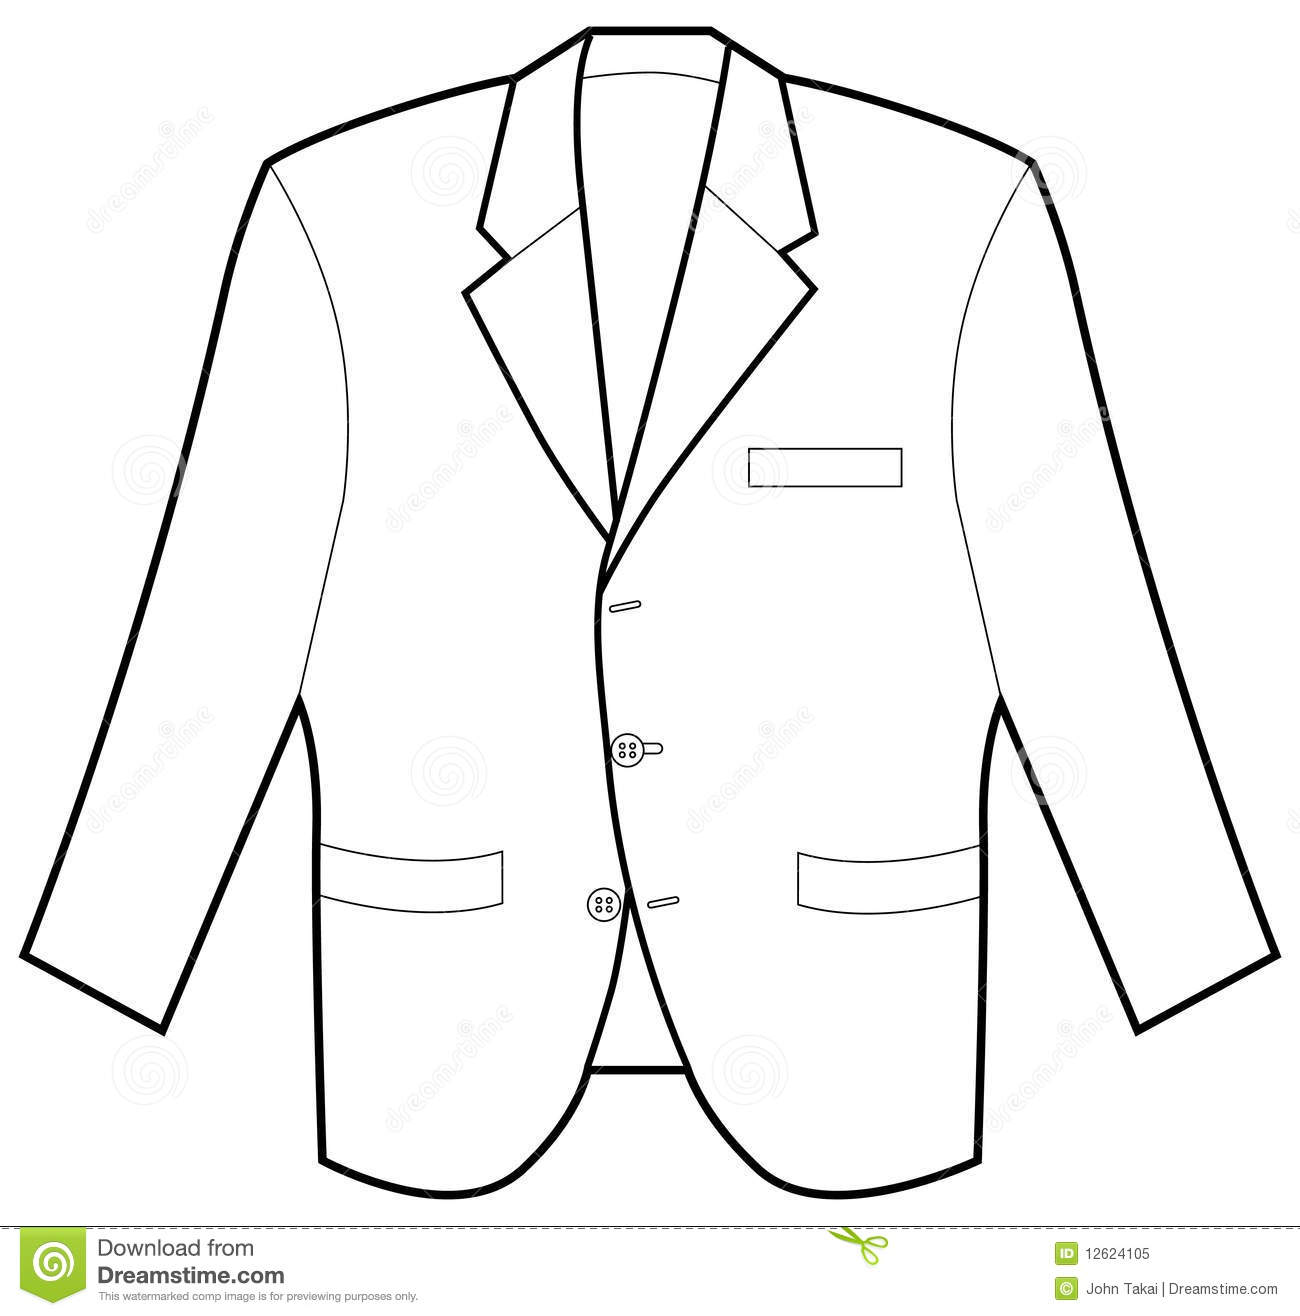 Royalty Free Stock Images Shirt Collar Image4746389 furthermore Visor besides Chemises Rugby  C3 A0 Xv Polo Maillot 305745 in addition Clipart MTLkg47jc as well Royalty Free Stock Photo Formal Jacket Image12624105. on collared shirt